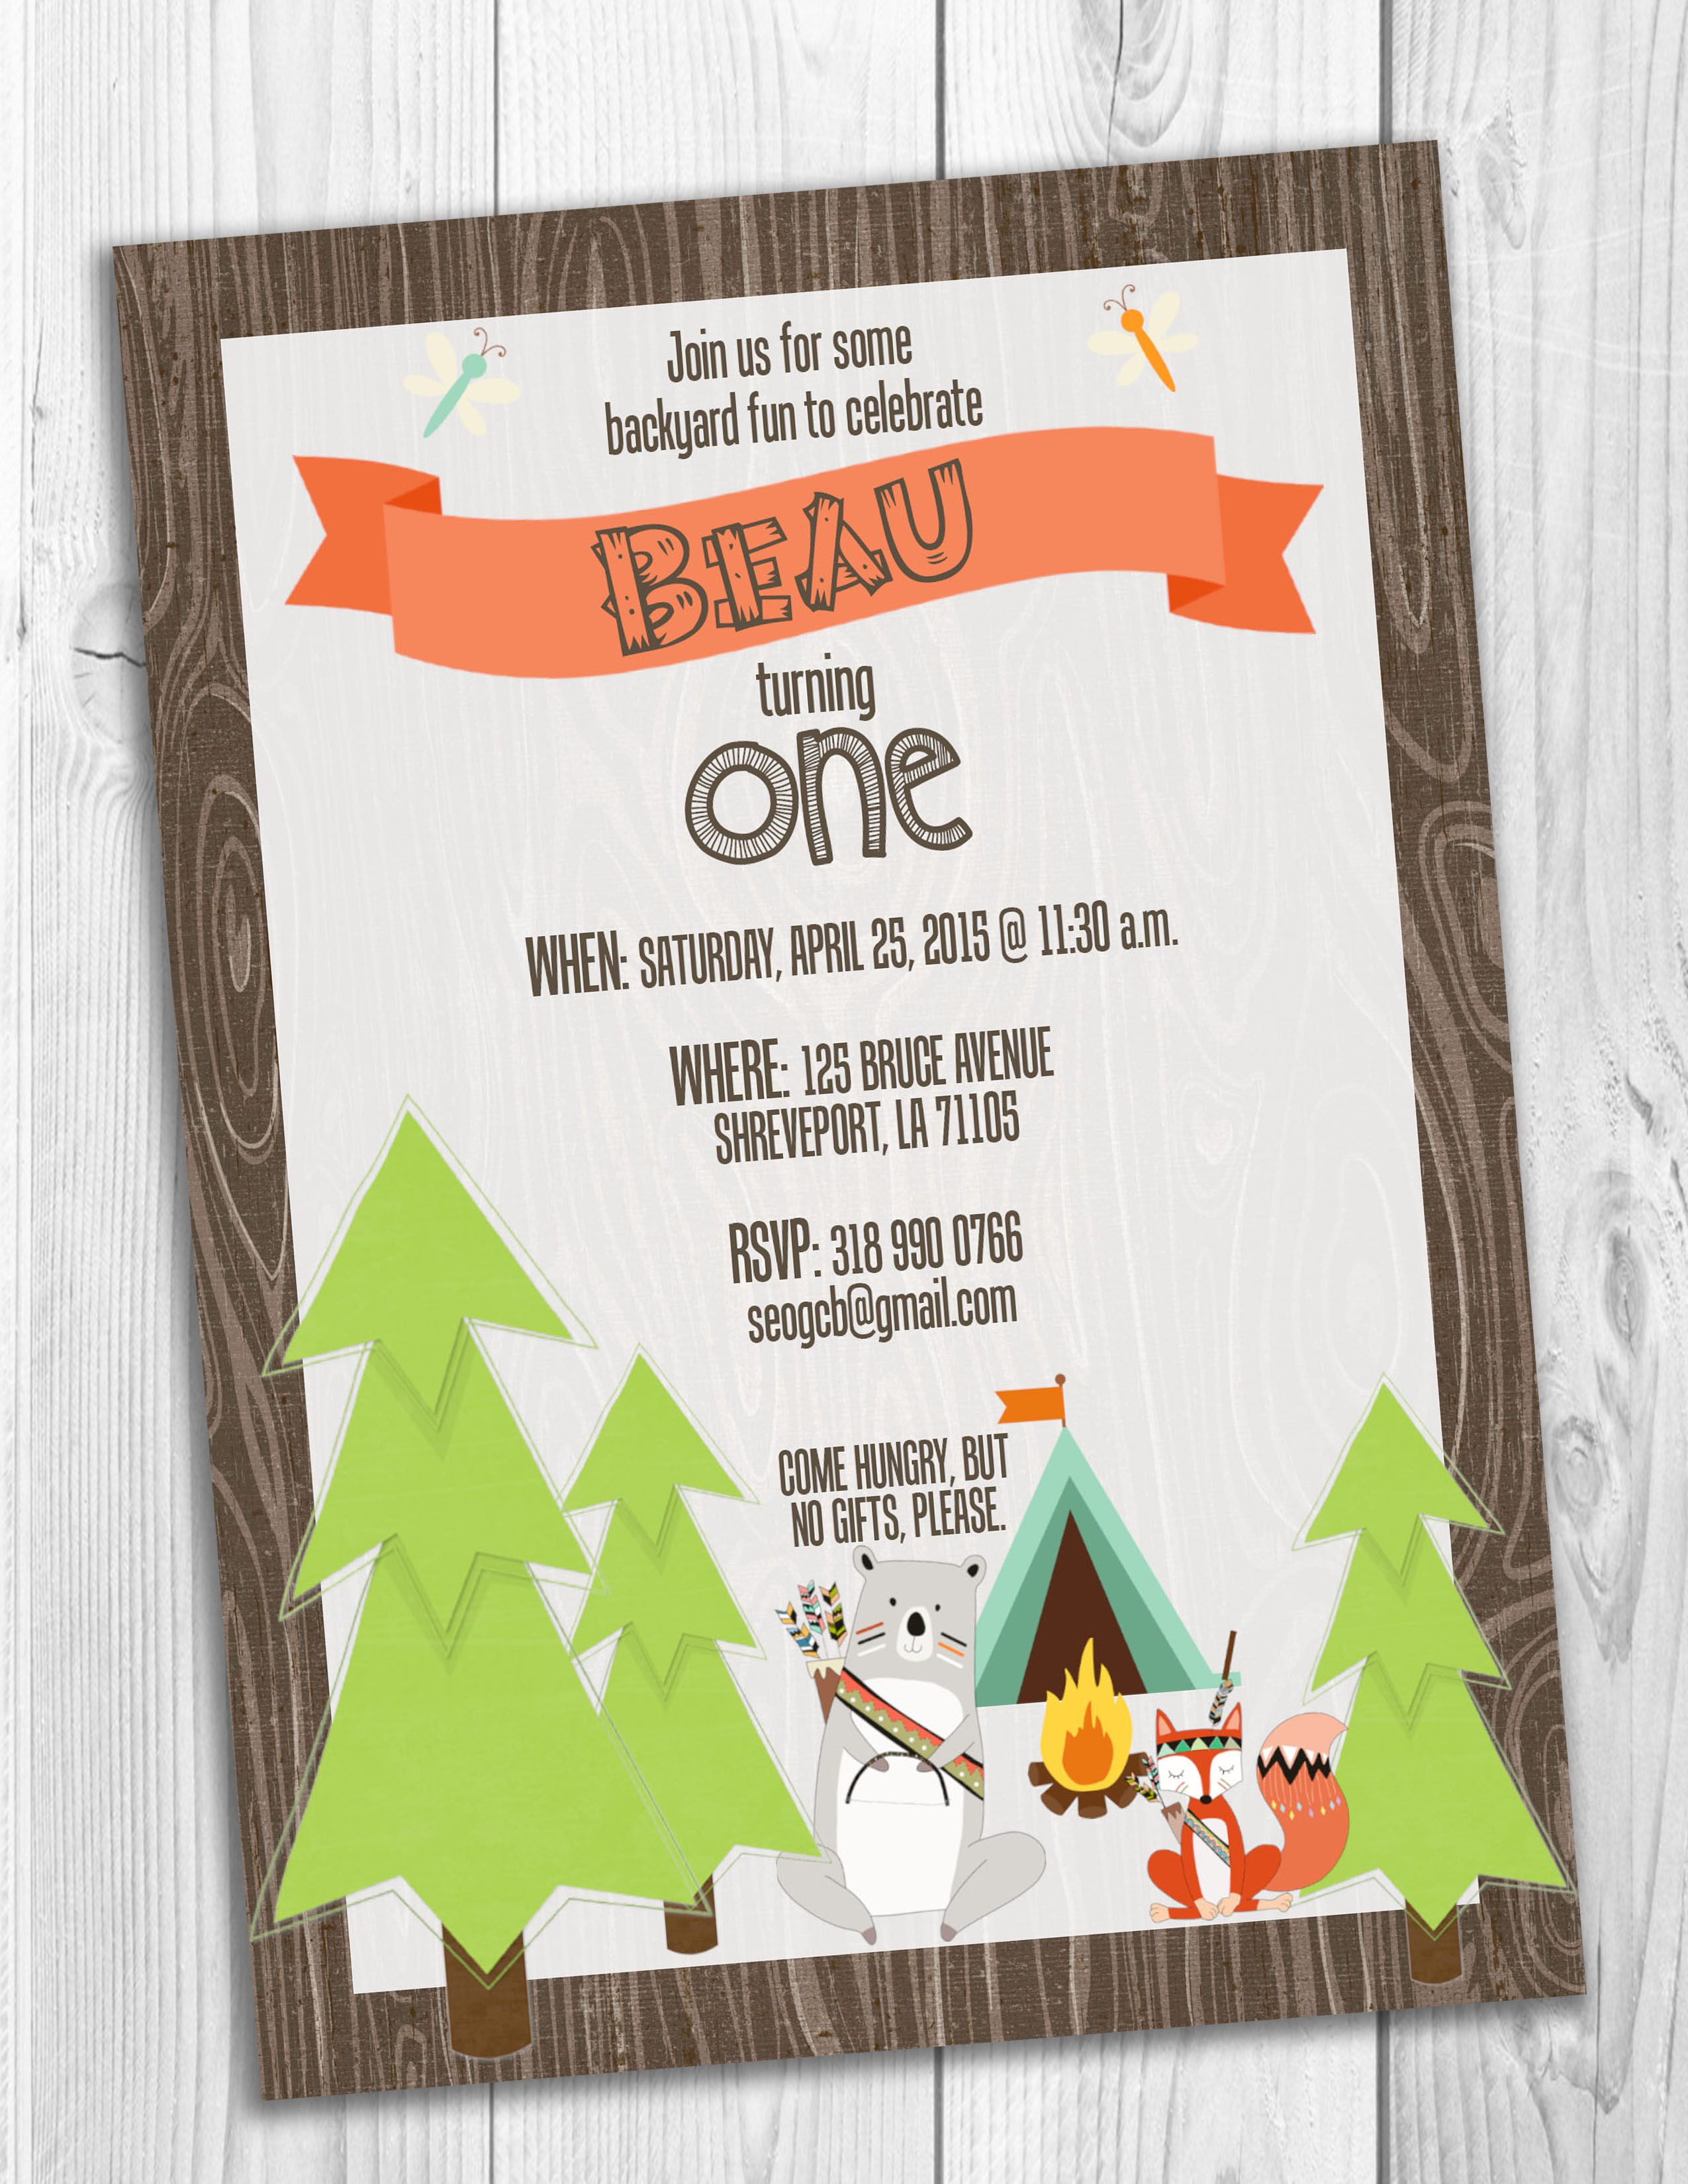 Woodland Camping Birthday Party Invitation | Invitations | Pinterest ...